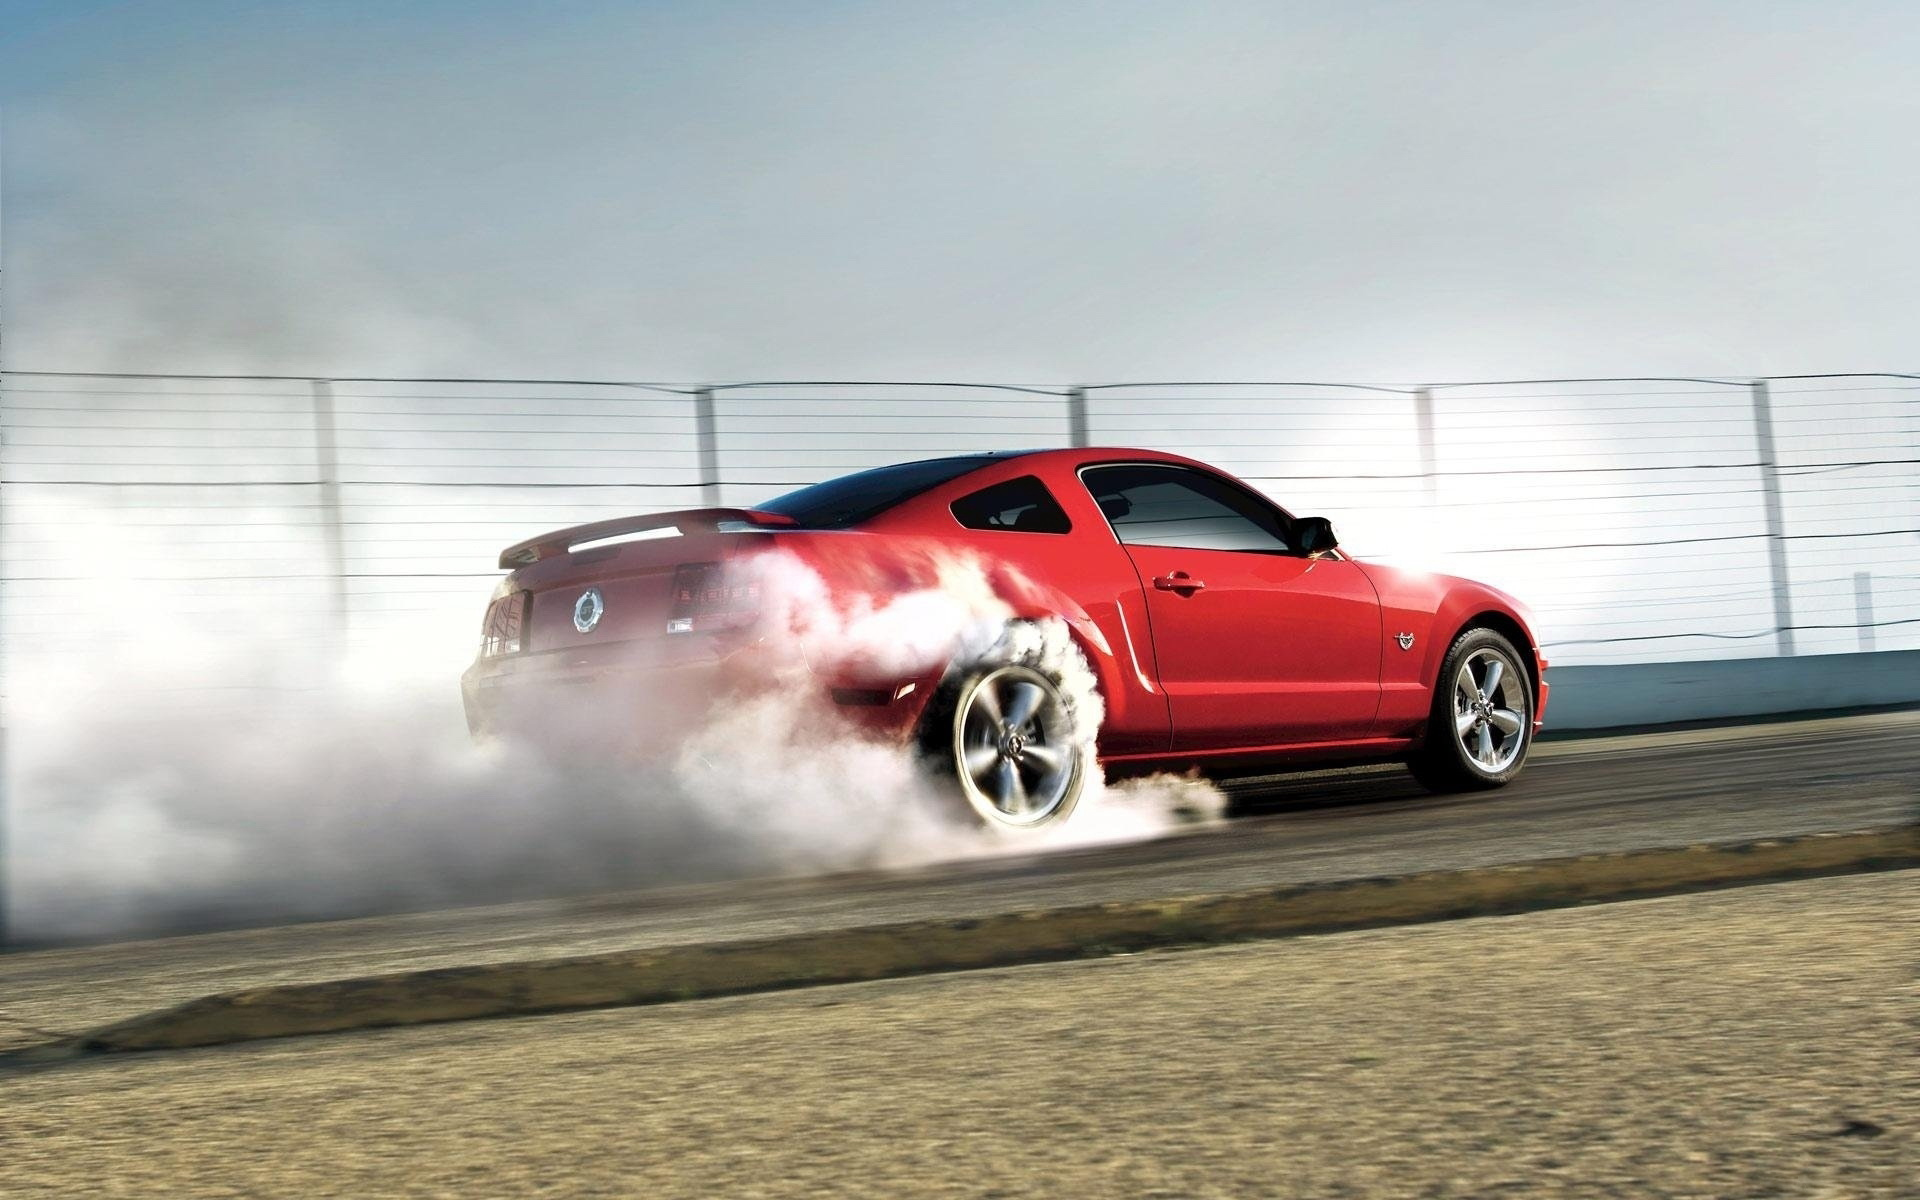 Cool Burnout Wallpaper 30267 2560x1600 px